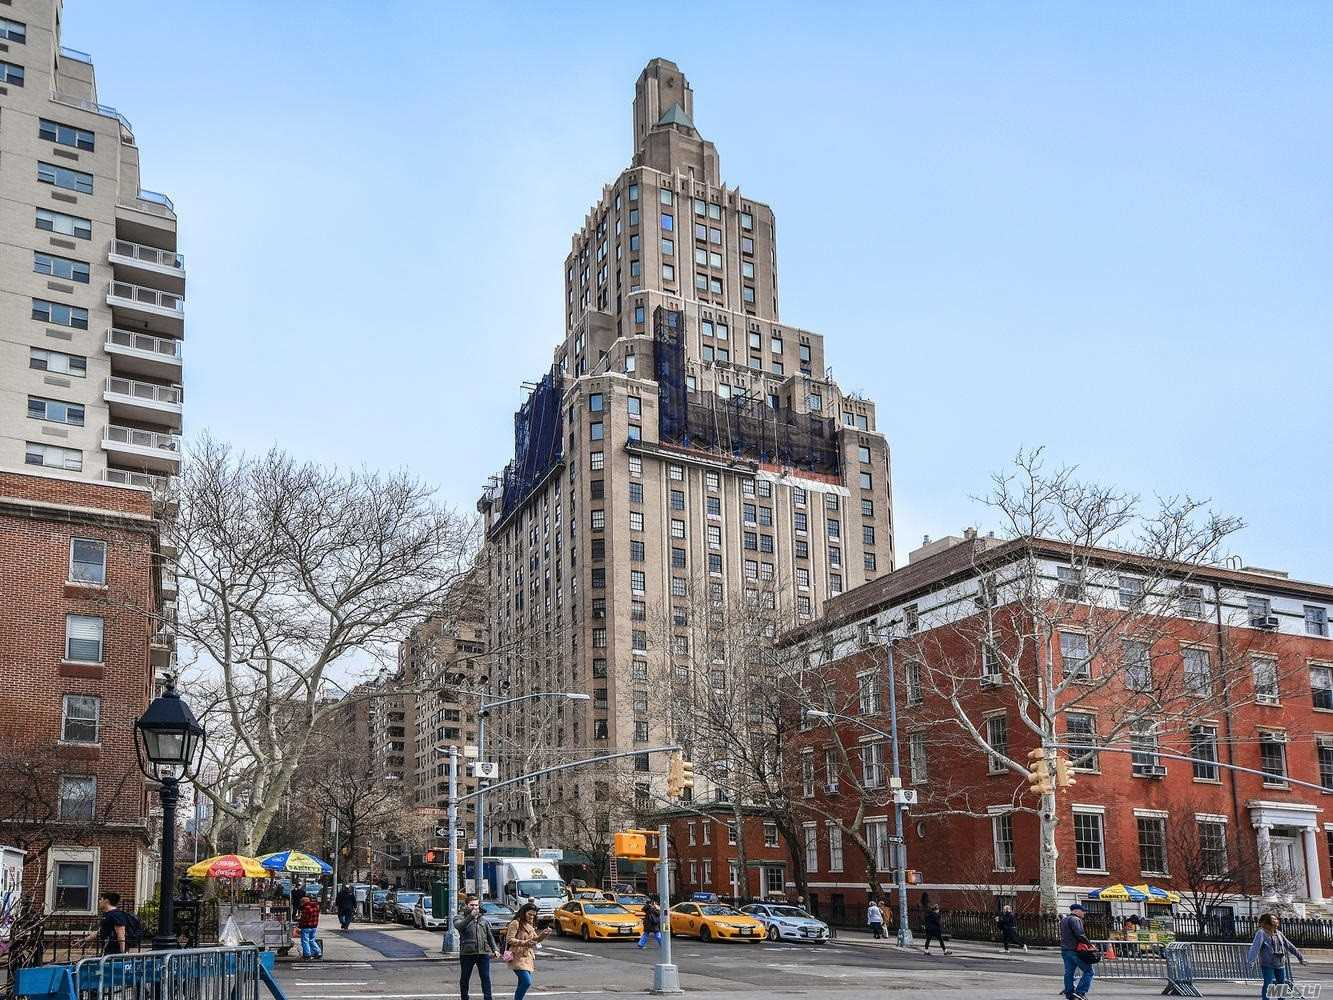 A Beautiful Prewar, Full Service Building Erected In 1927 By Harvey Wiley Corbeth. Live The Life Of Elegance In This Amazing Apartment Overlooking Washington Sq. Park And 5th Avenue.